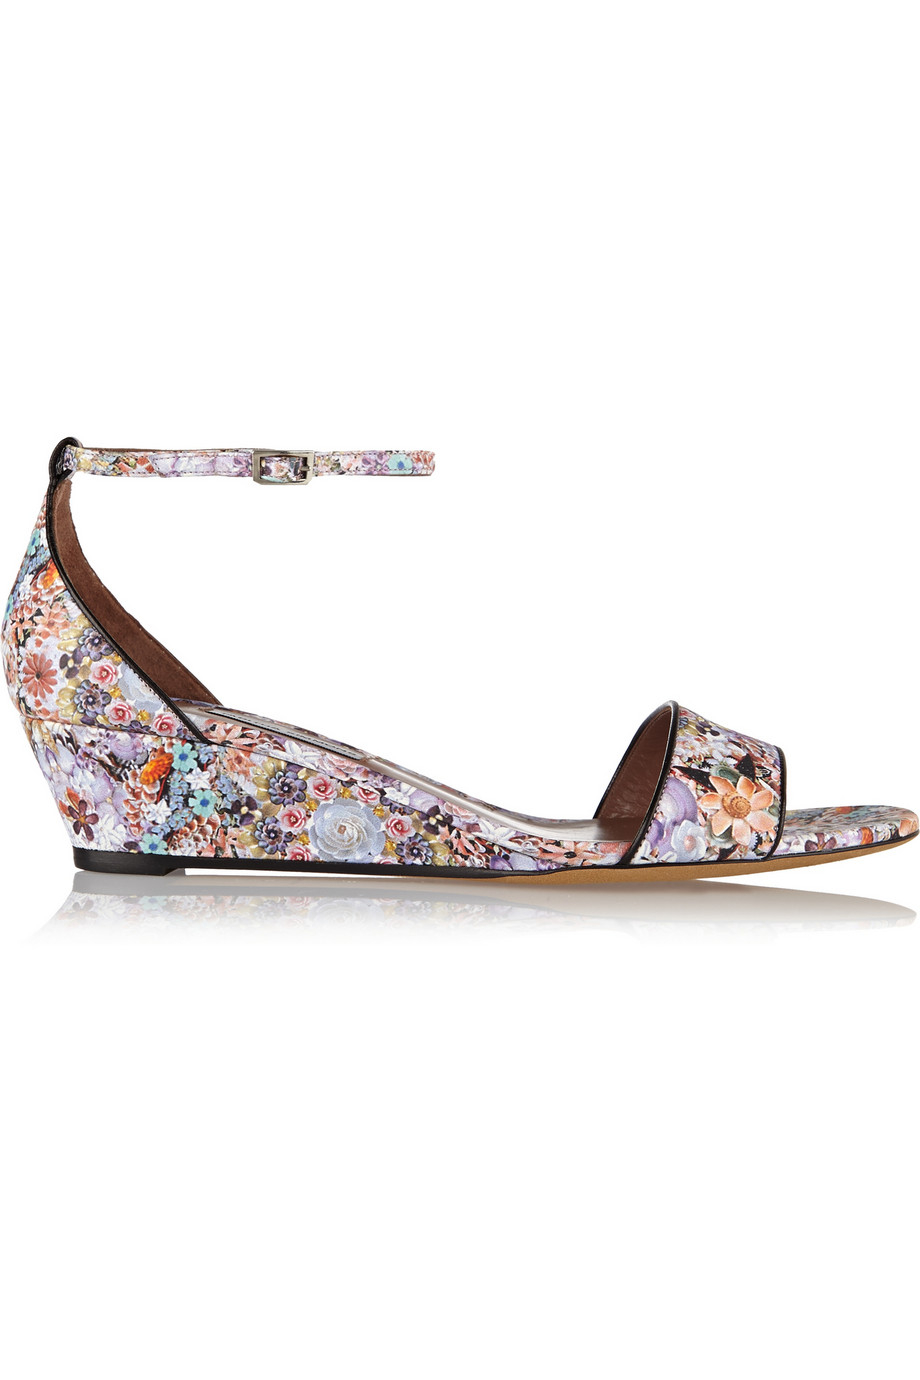 82360bf3930 Lyst - Tabitha Simmons Juniper Floral-print Leather Wedge Sandals in ...